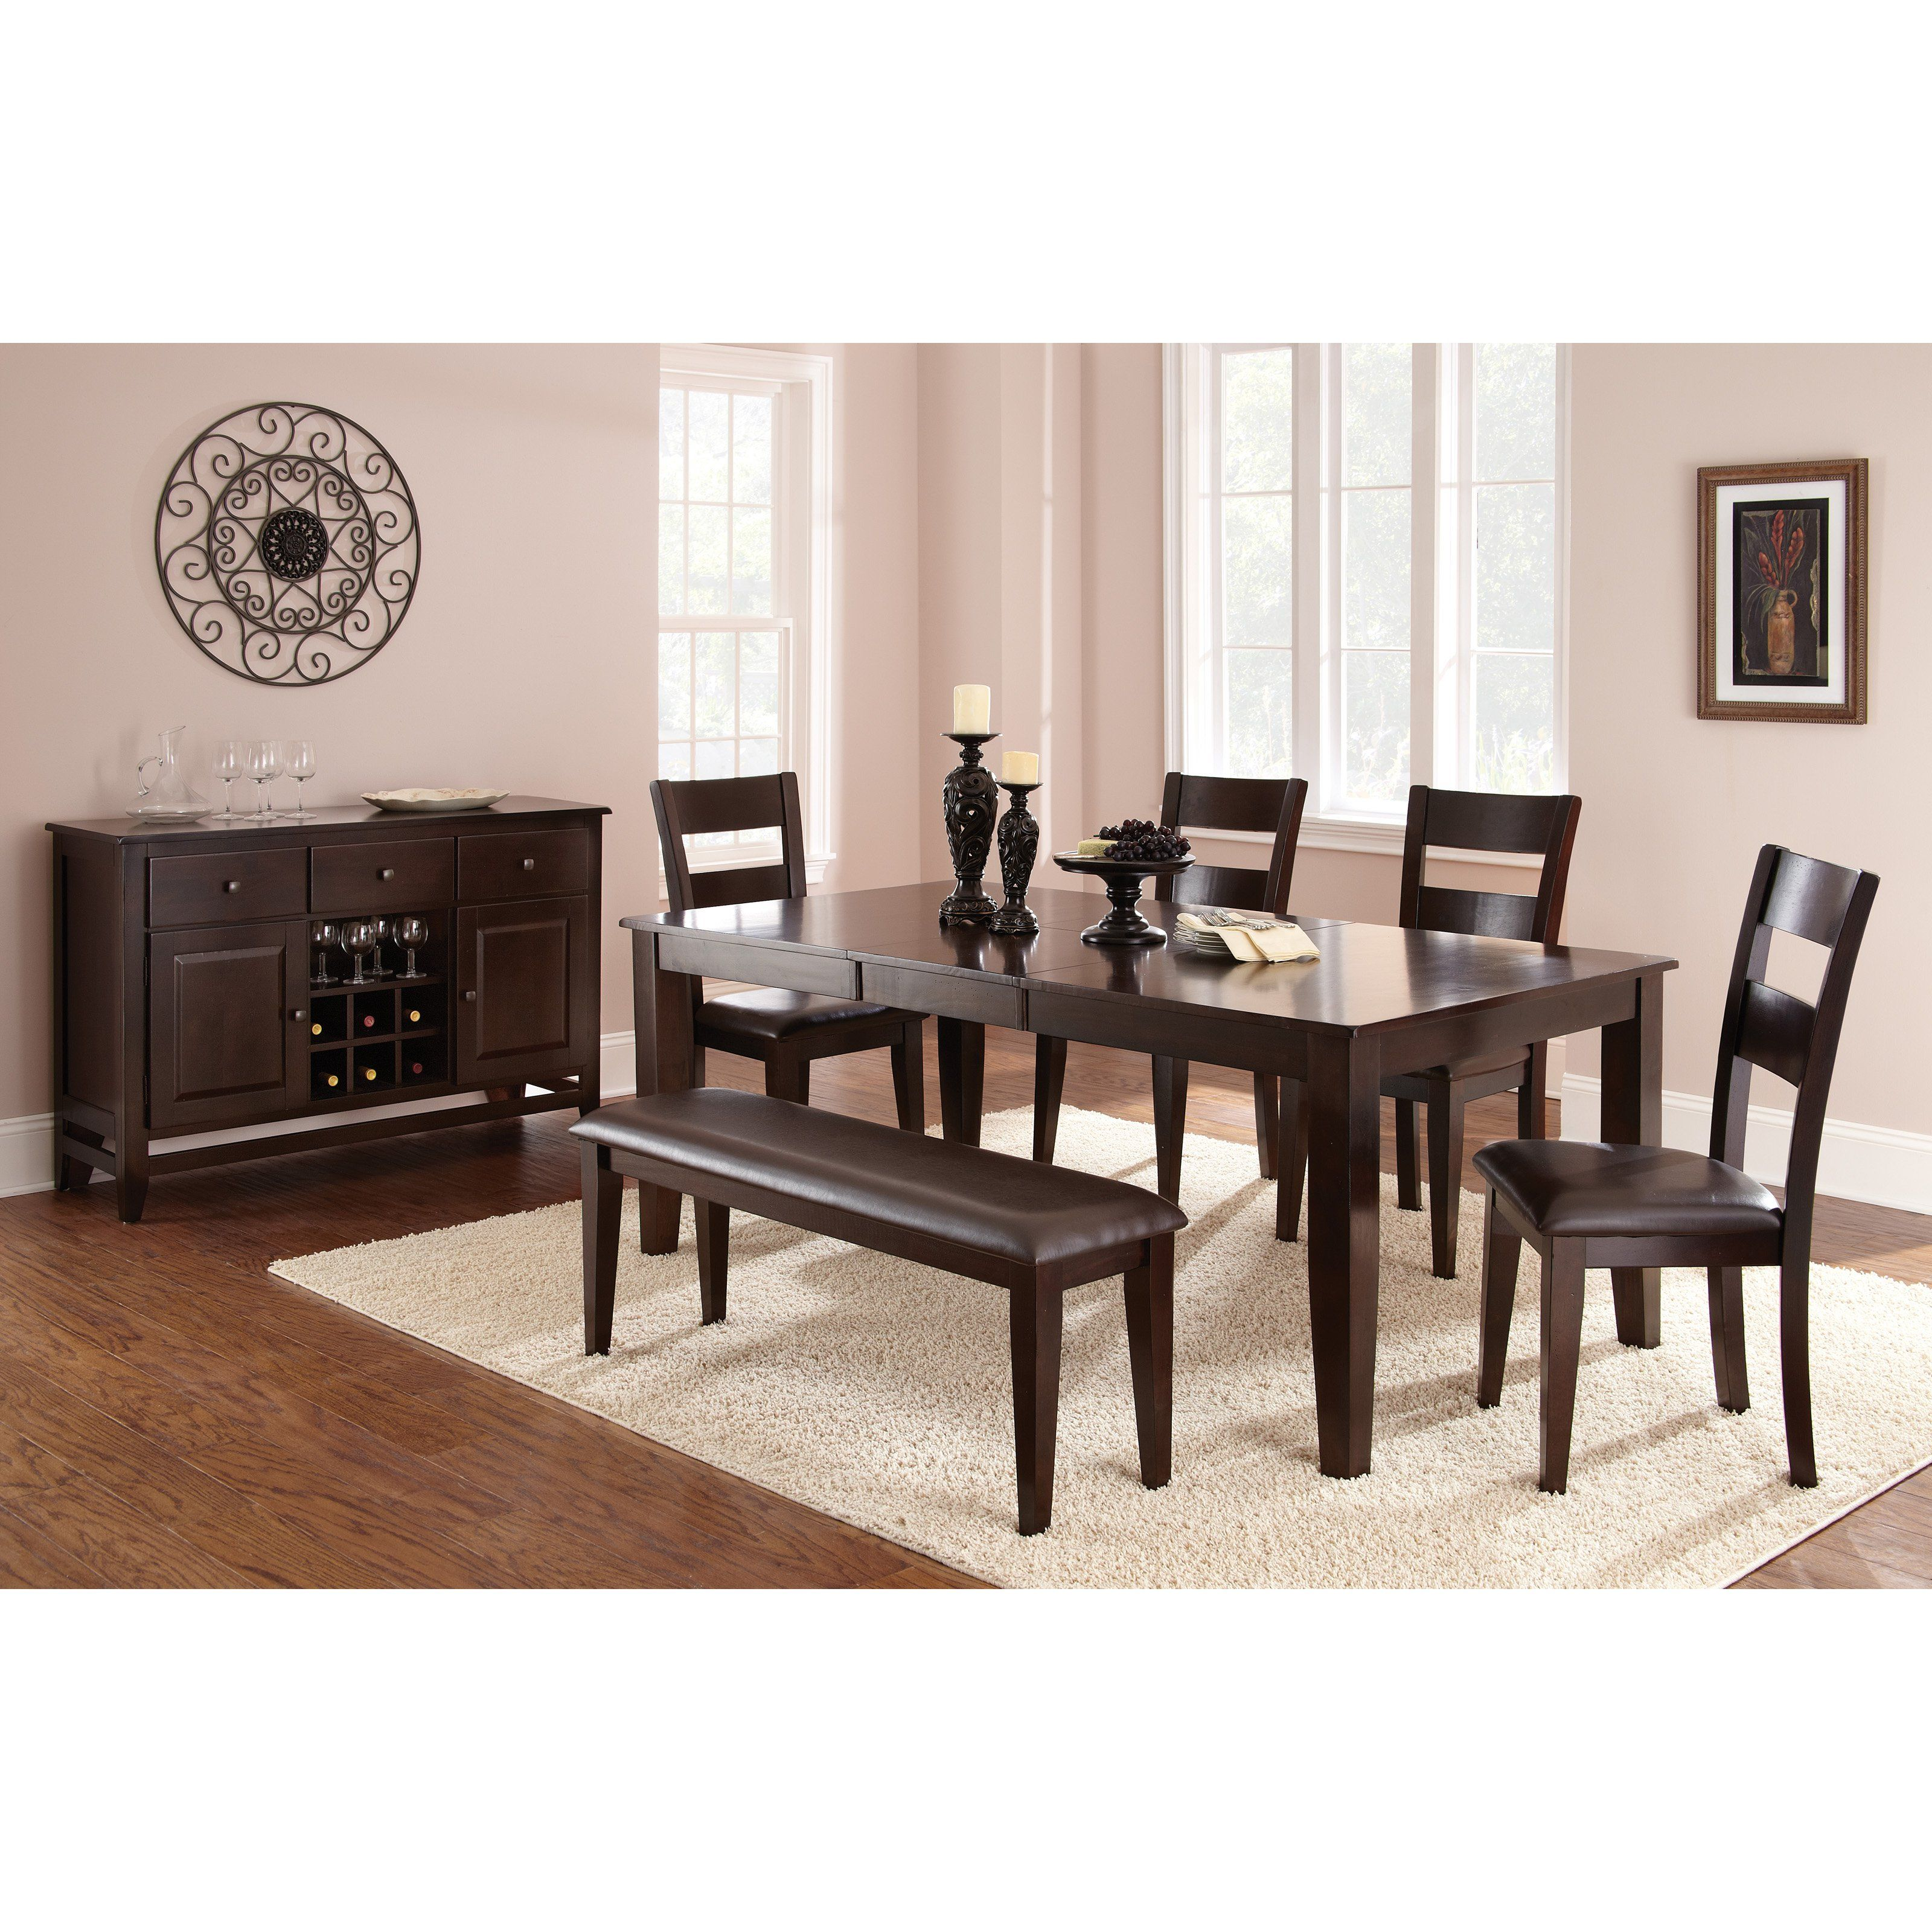 Have To Have Itsteve Silver Victoria Dining Table  Mango  $498 Delectable Steve Silver Dining Room Set Decorating Inspiration